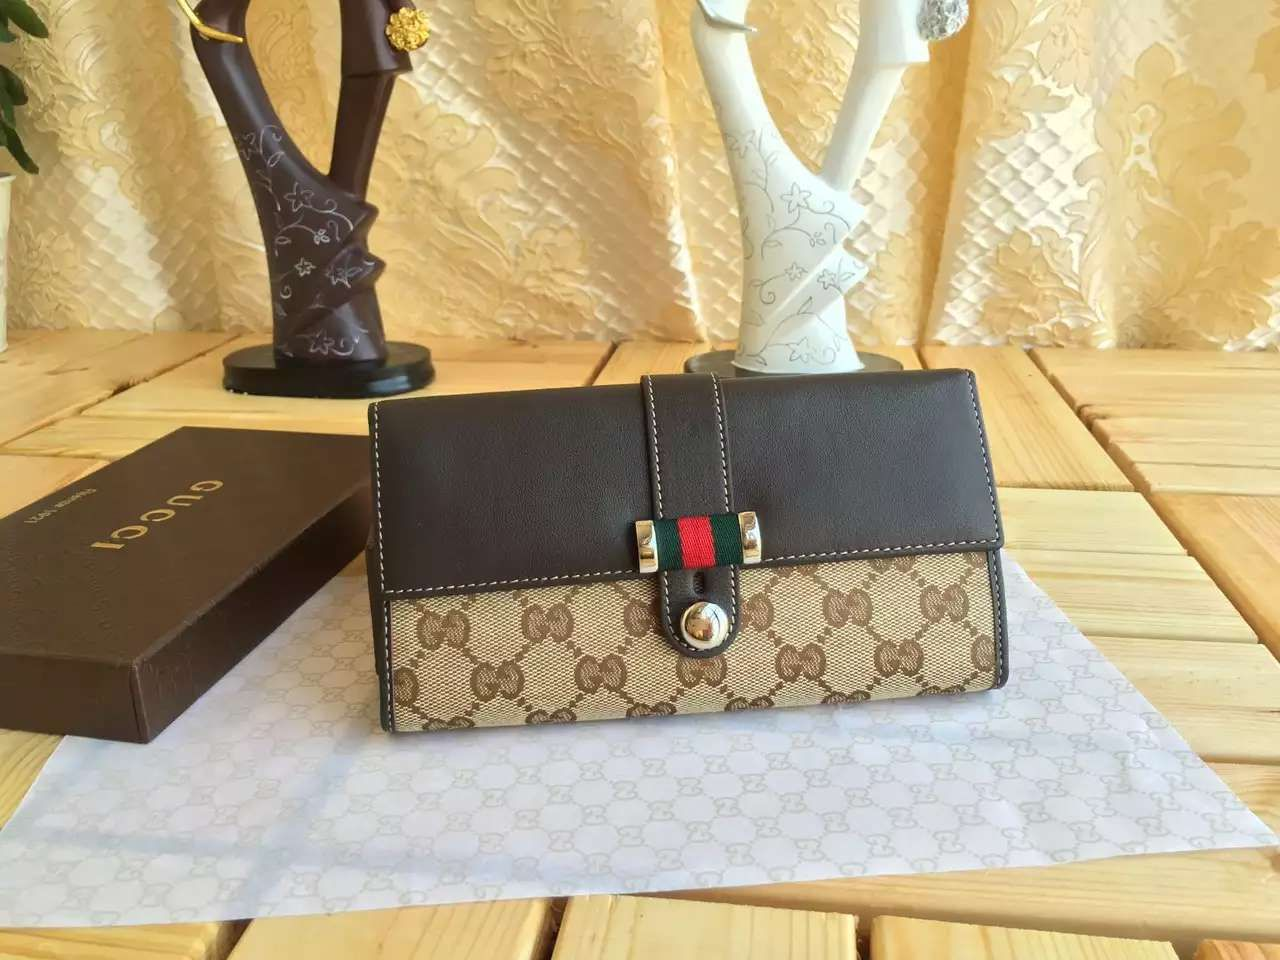 gucci Wallet, ID : 25365(FORSALE:a@yybags.com), gucci purple handbags, gucci head designer, gucci backpacks for travel, gucci store paris, gucci us site, gucci retailers, gucci hiking backpack, gucci sale us, gucci luxury bags, gucci book bags on sale, gucci bags discount, gucci leather belts online, gucci wallet with zipper #gucciWallet #gucci #gucci #nz #online